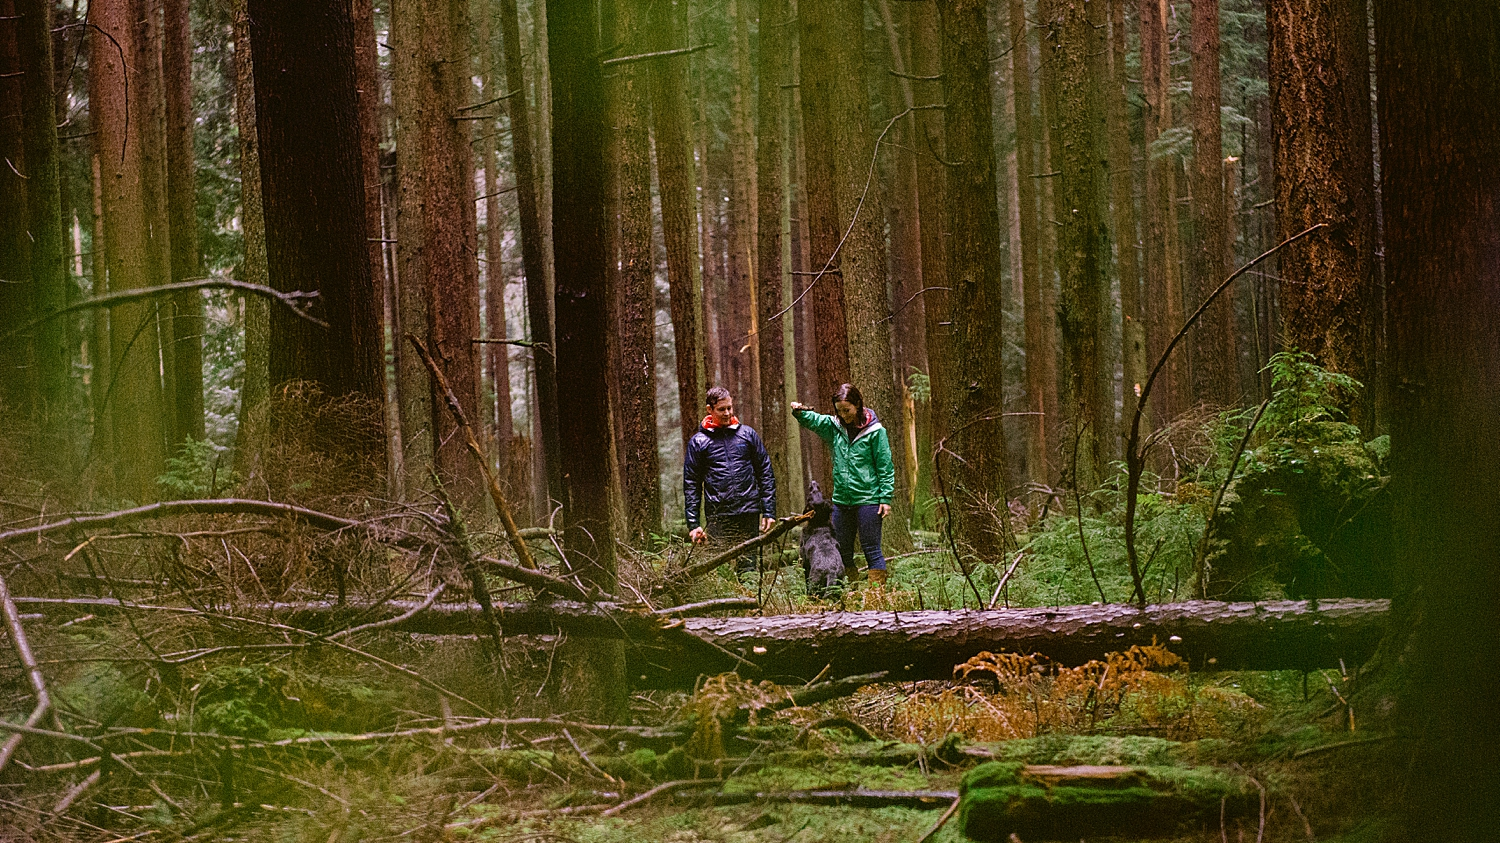 british columbia - pacific spirit park - engagement shoot - vancouver b.c.- maylies lang photography -13.jpg